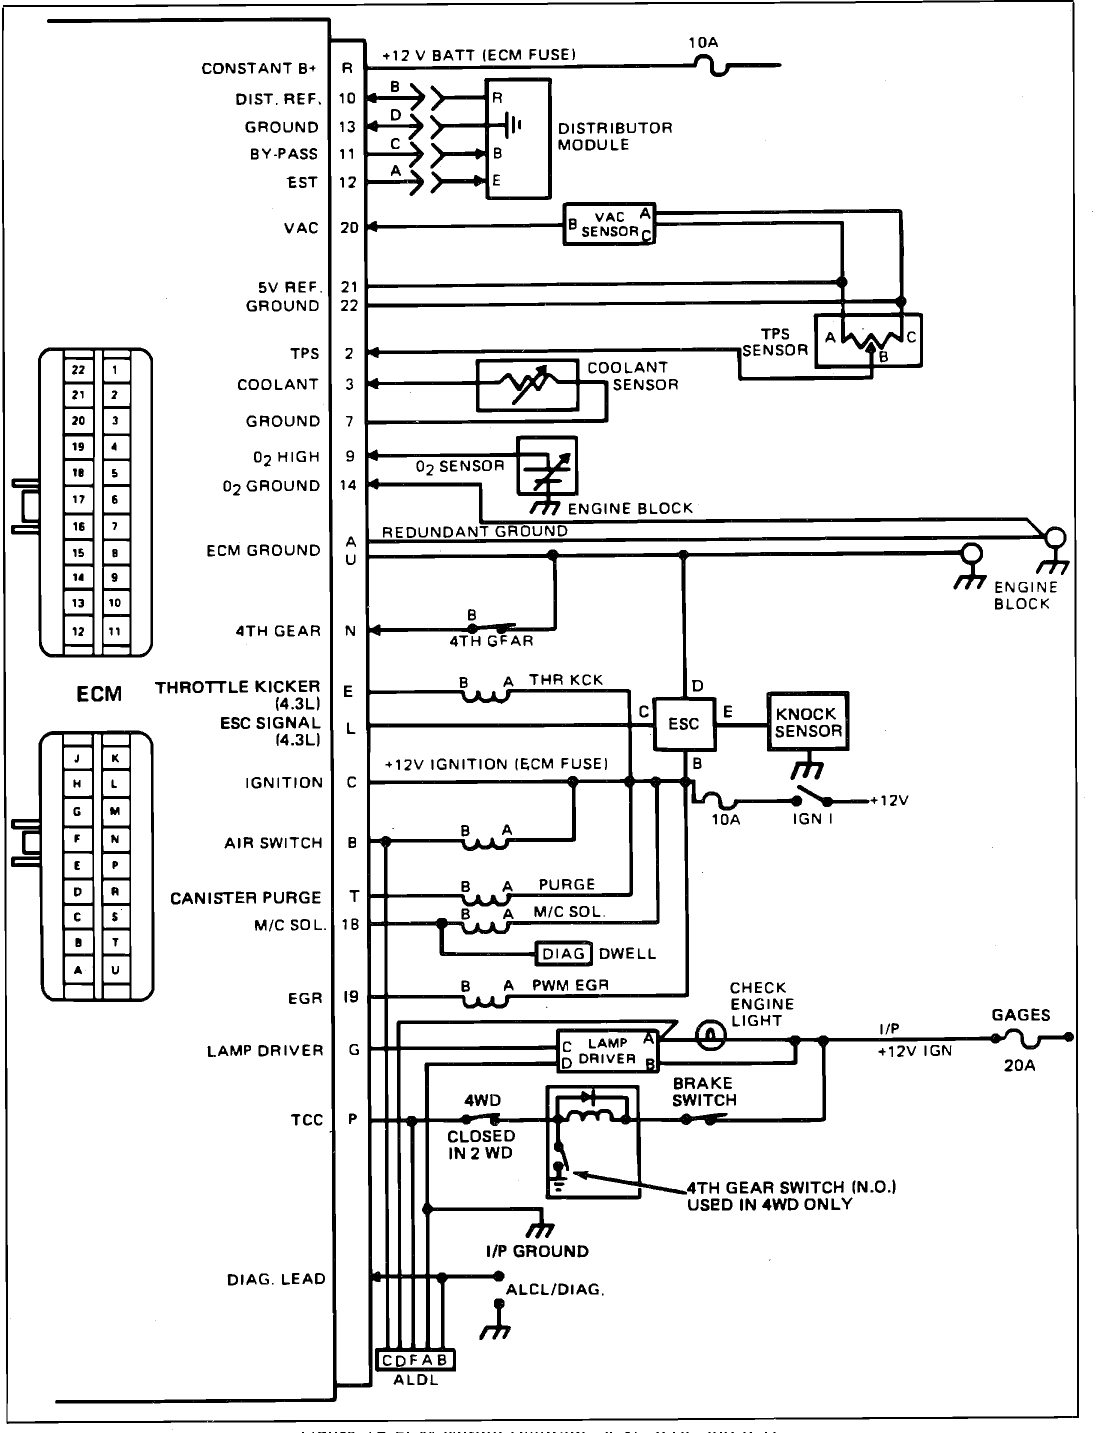 hight resolution of 1985 chevy silverado fuse box wiring library rh 76 kaufmed de 1985 chevy fuse box diagram 1985 chevy c10 fuse box diagram